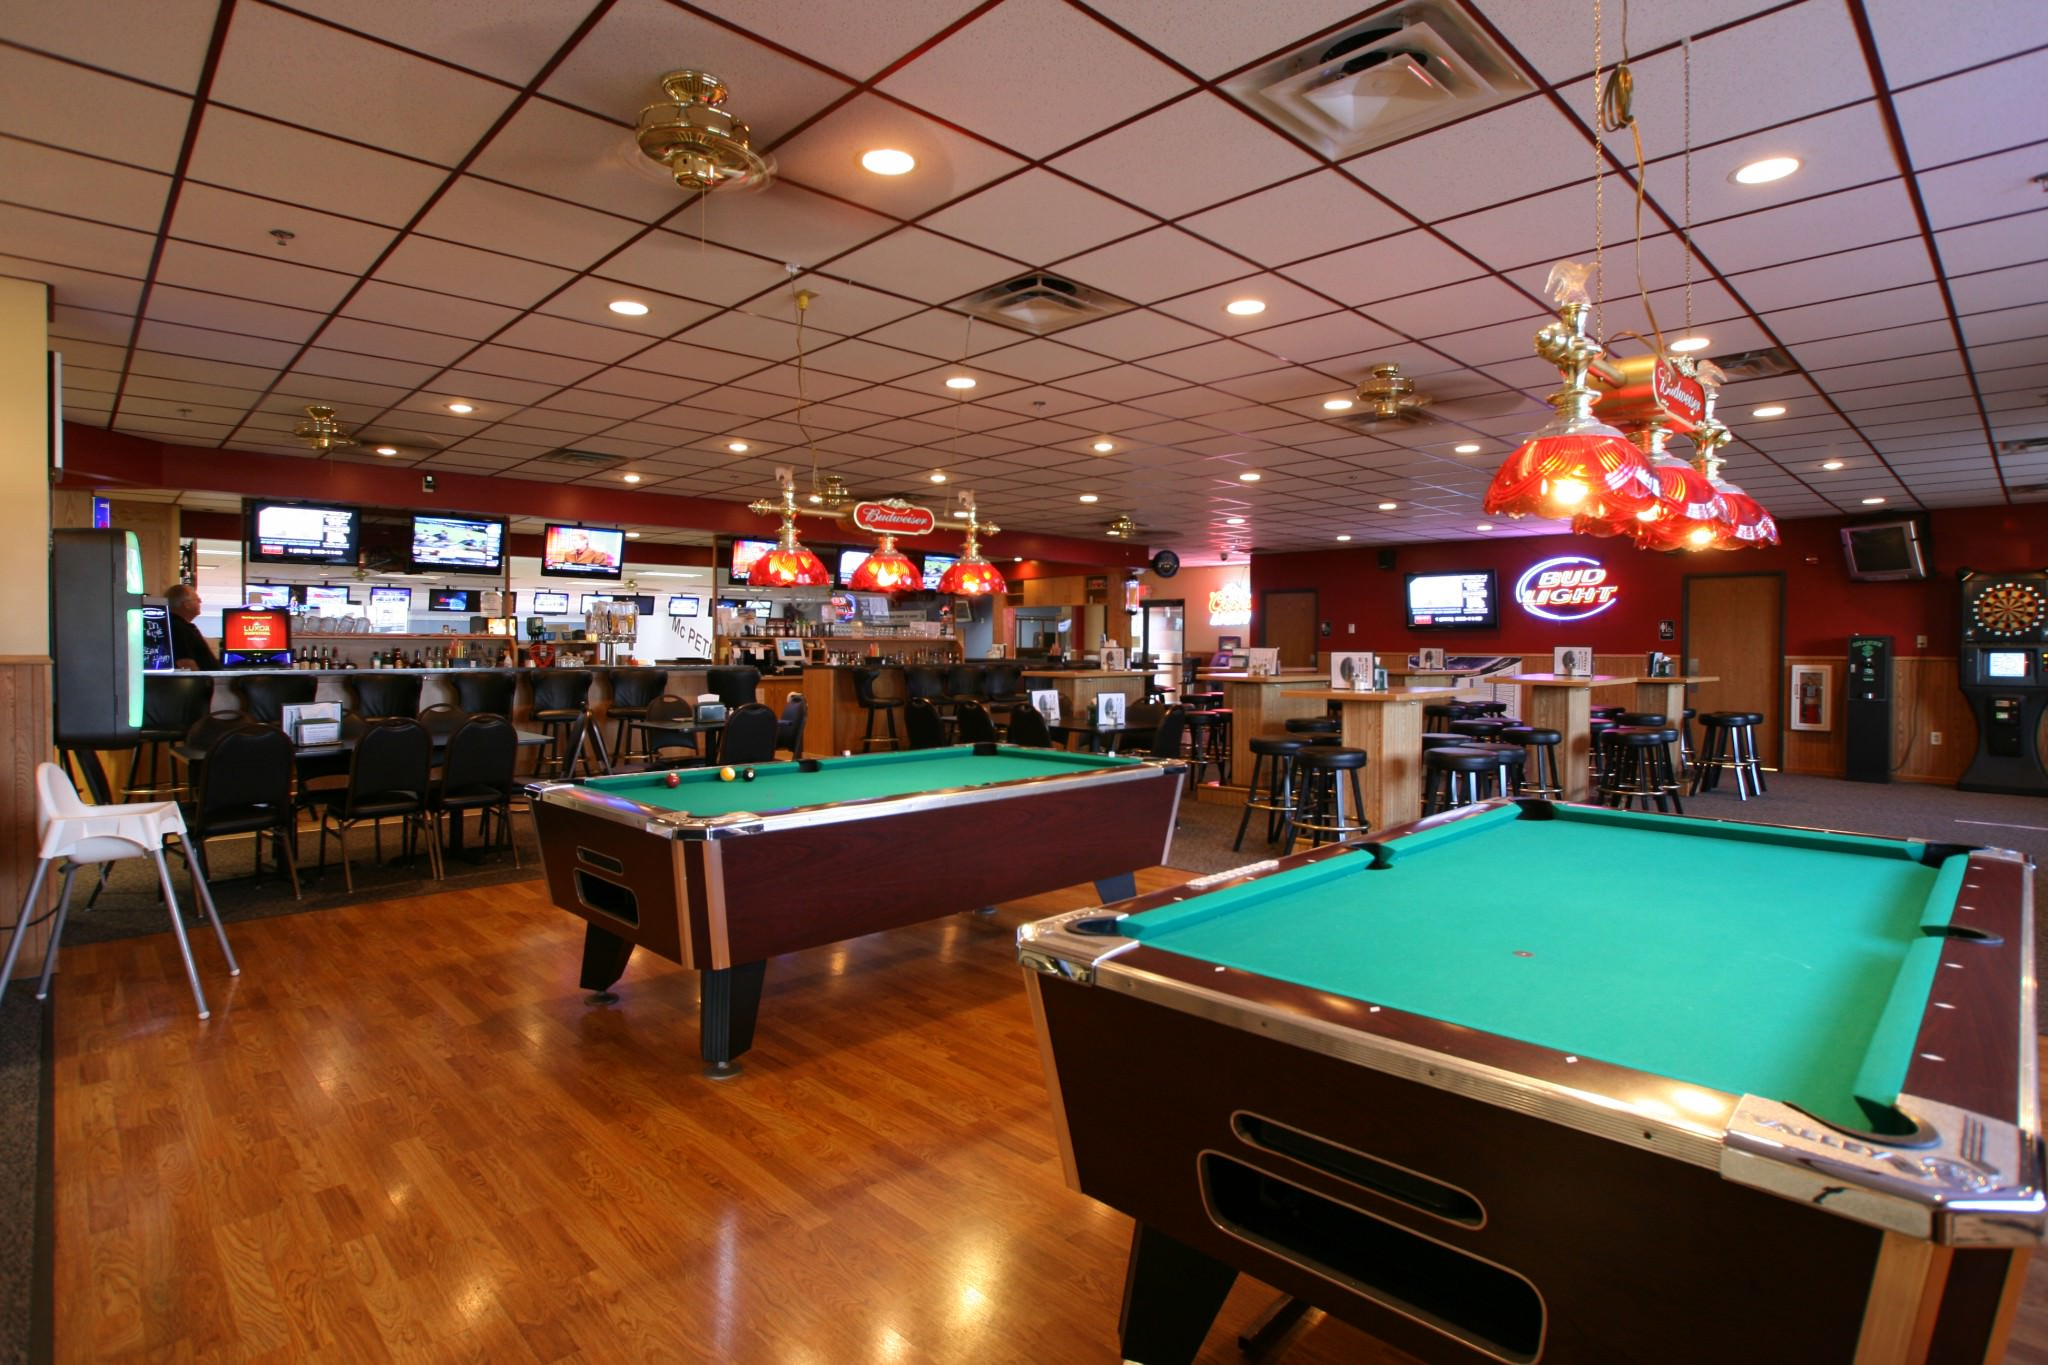 McPete's pool tables